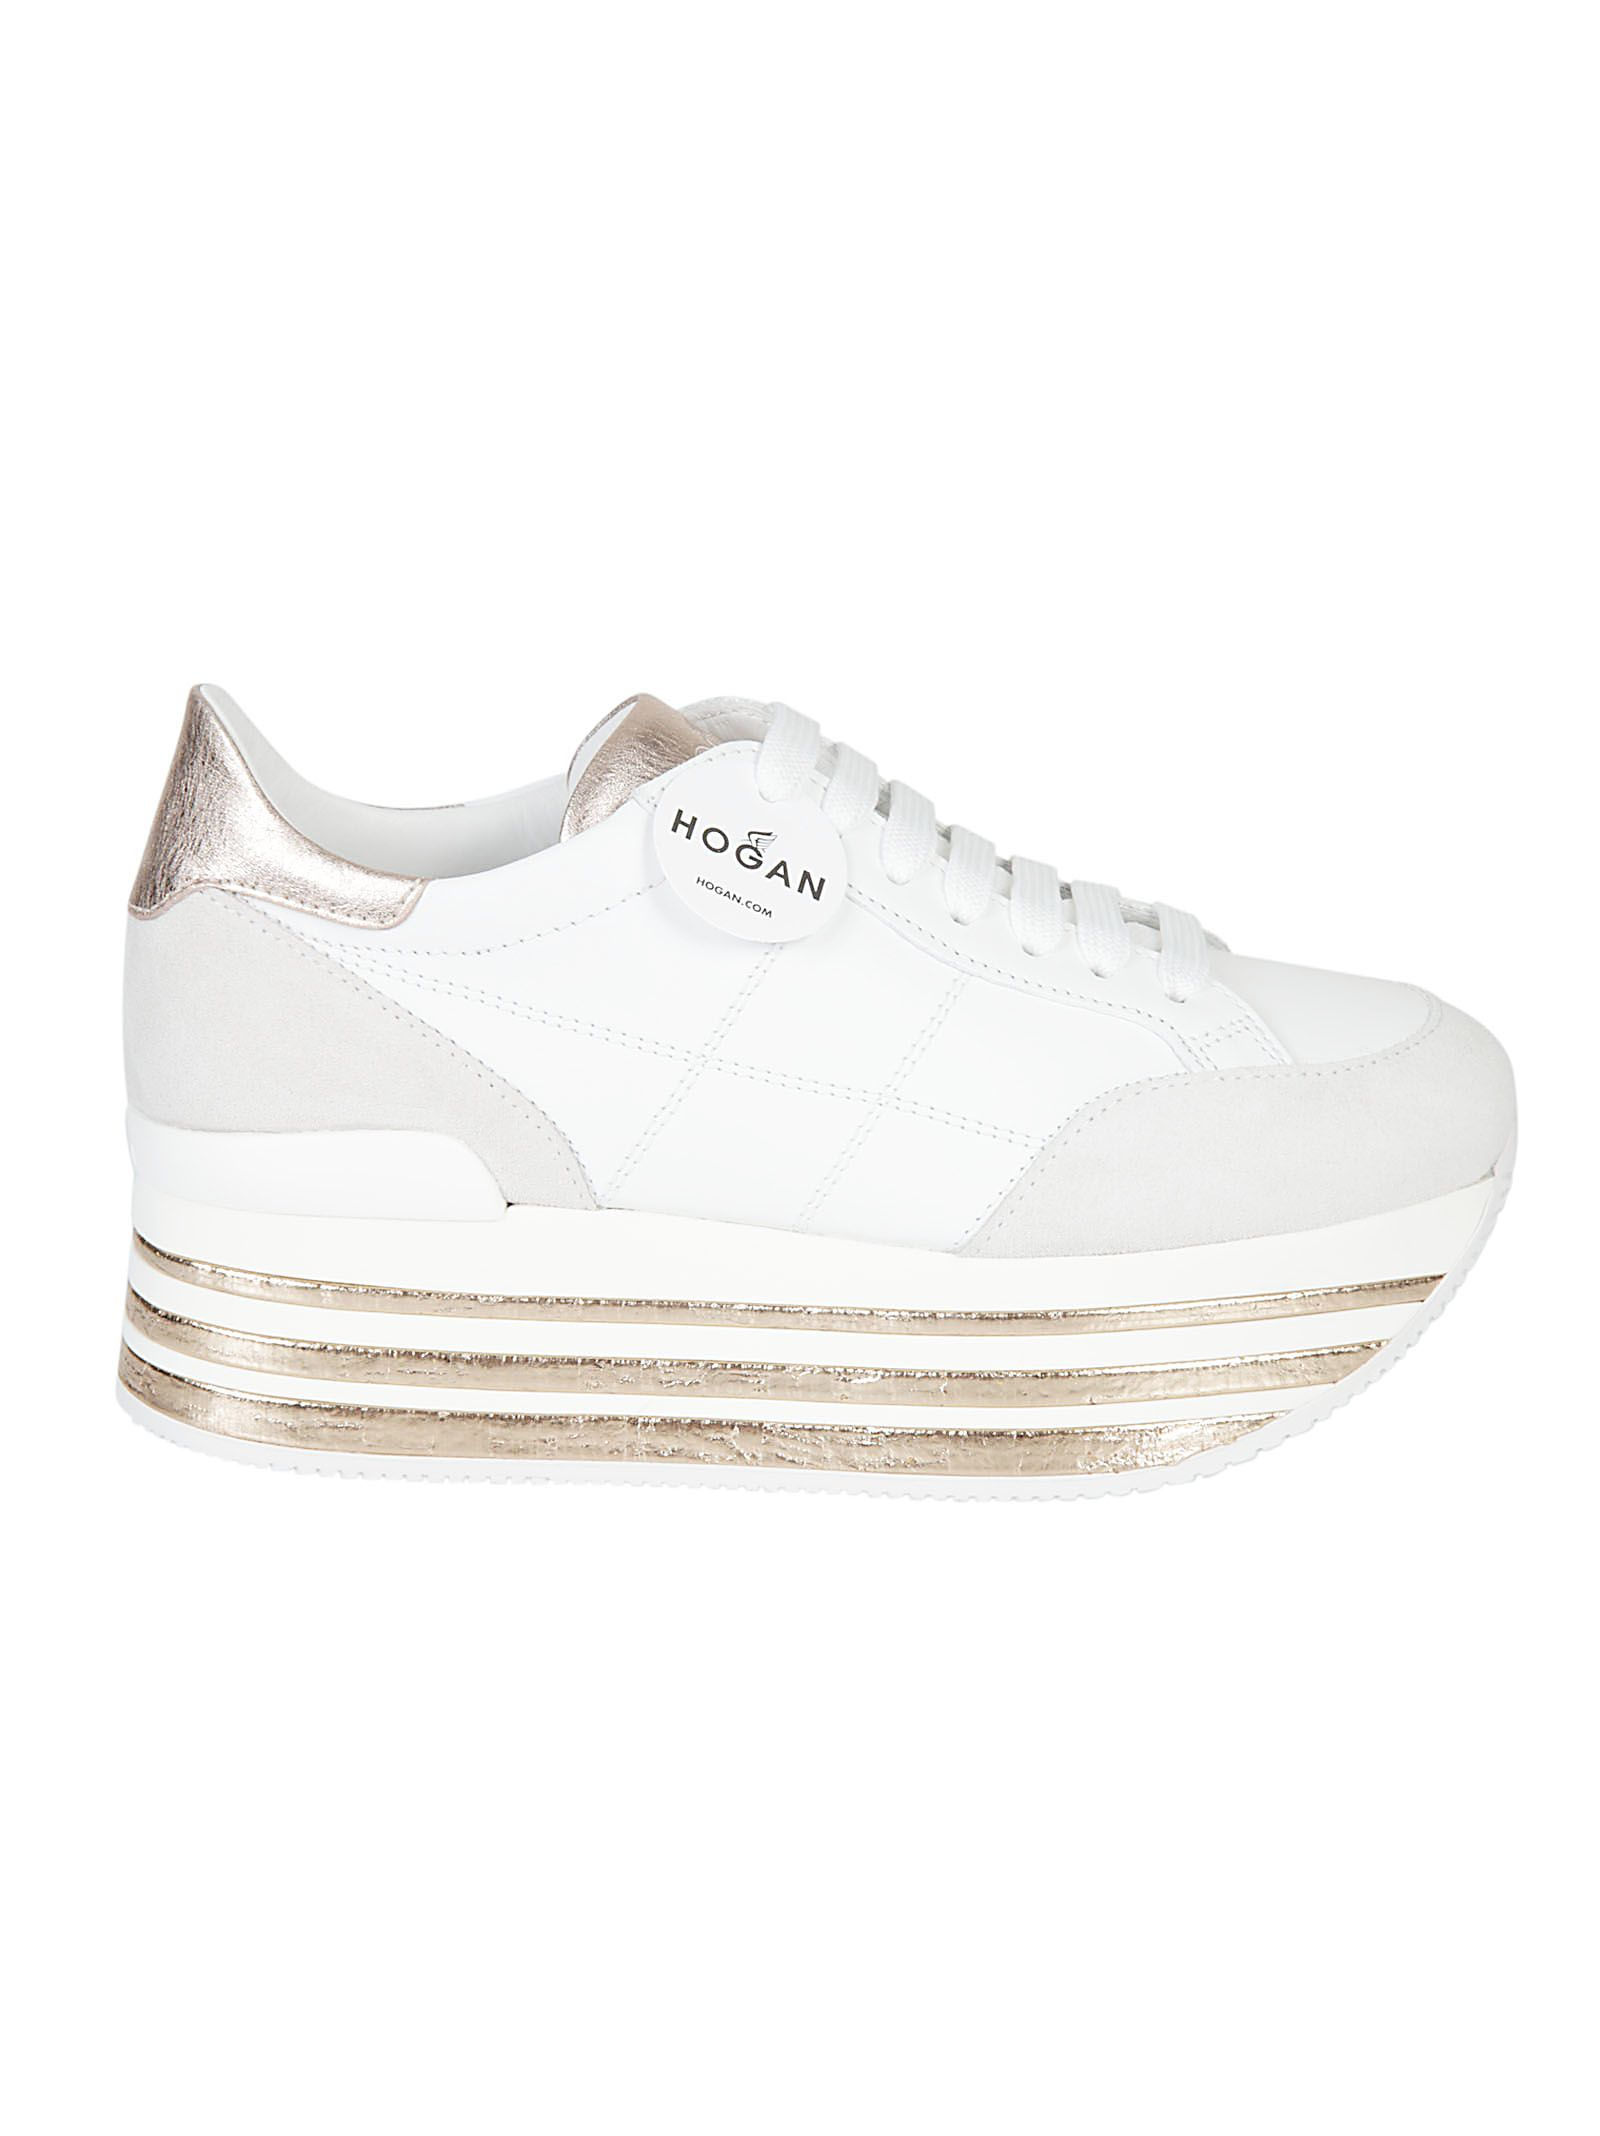 Manchester Discount Footlocker platform sneakers - White Hogan Free Shipping Comfortable From China Cheap Price TmjmeVAO